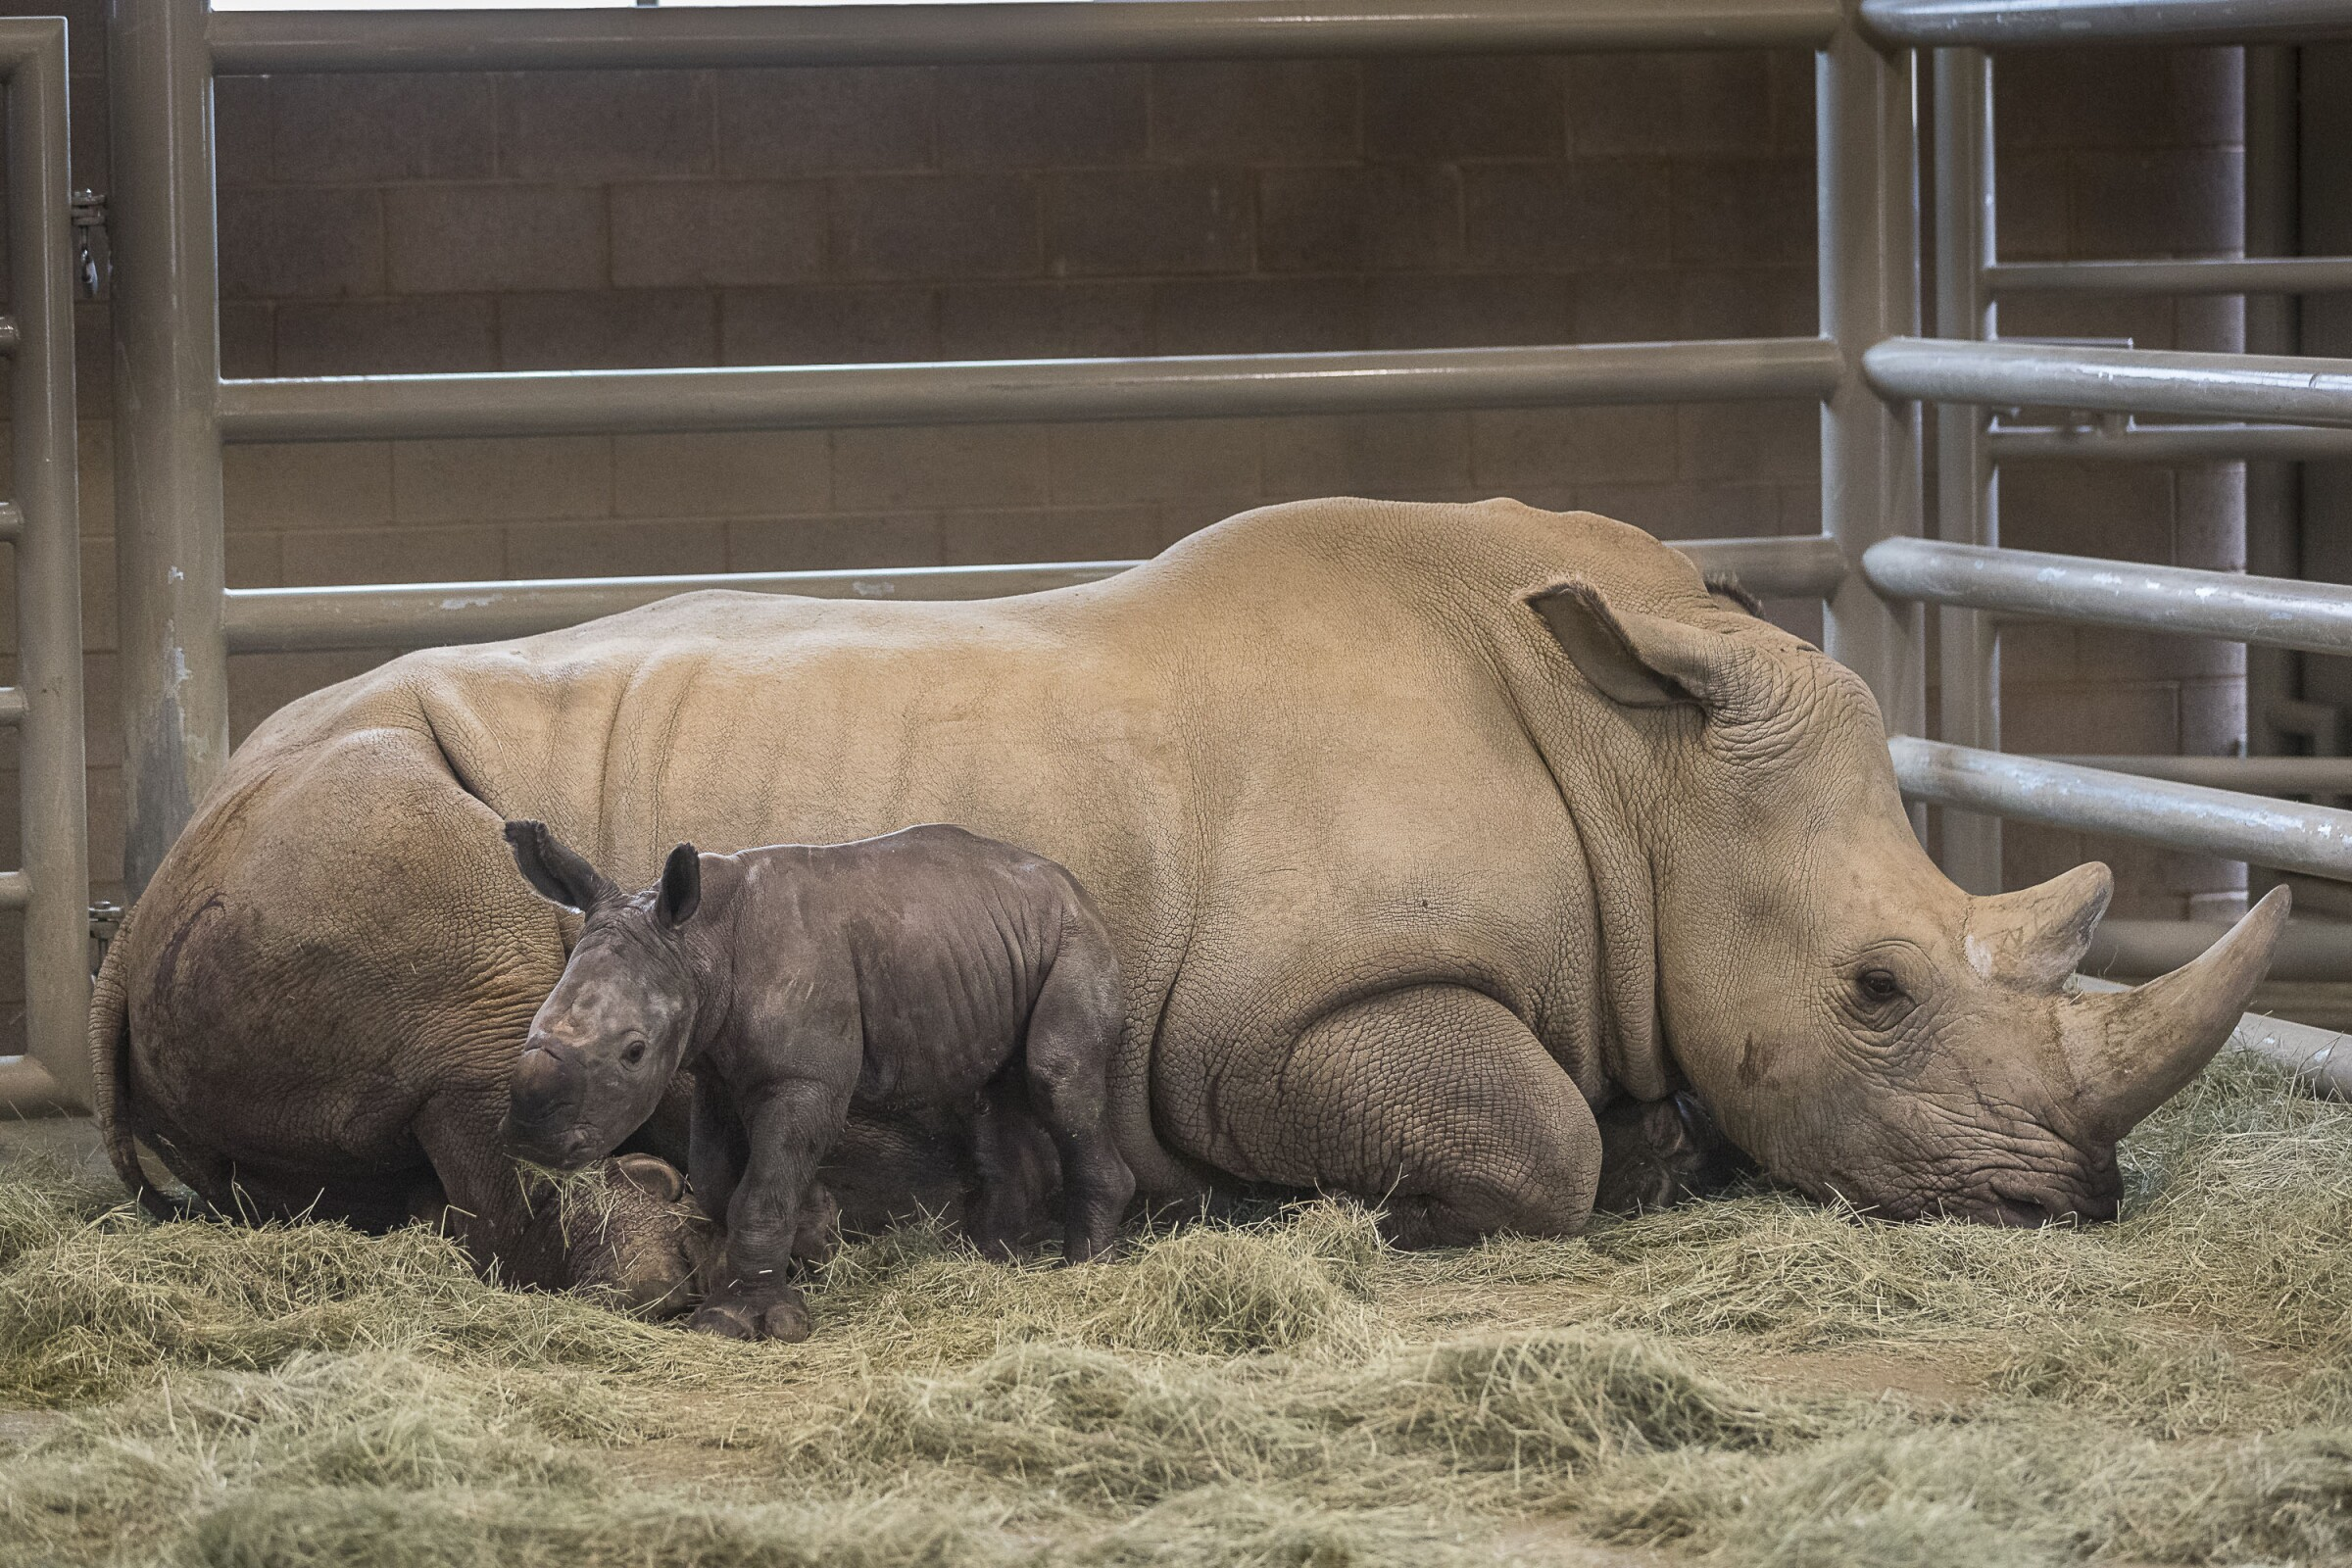 Southern White Rhino Calf Conceived Through Artificial Insemination Bonding Well with Its Mother at San Diego Zoo Safari Park